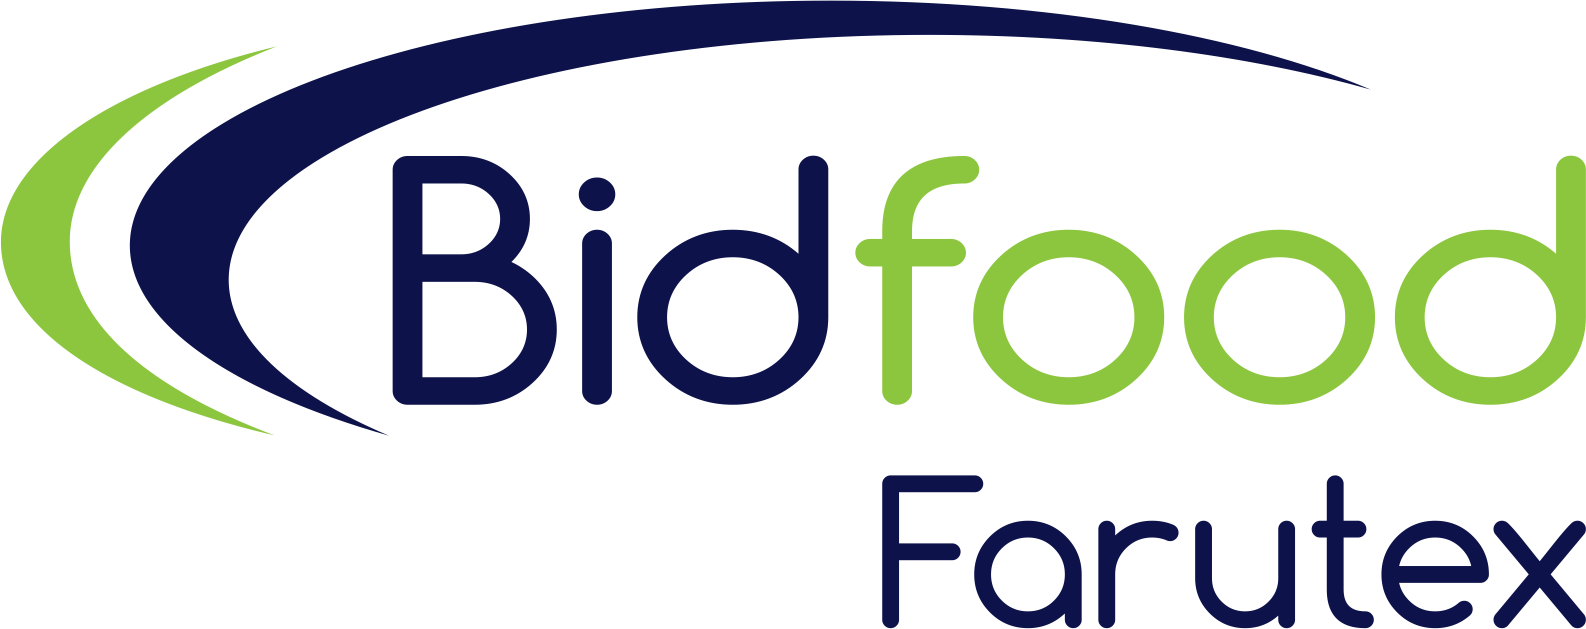 Bidfood Farutex